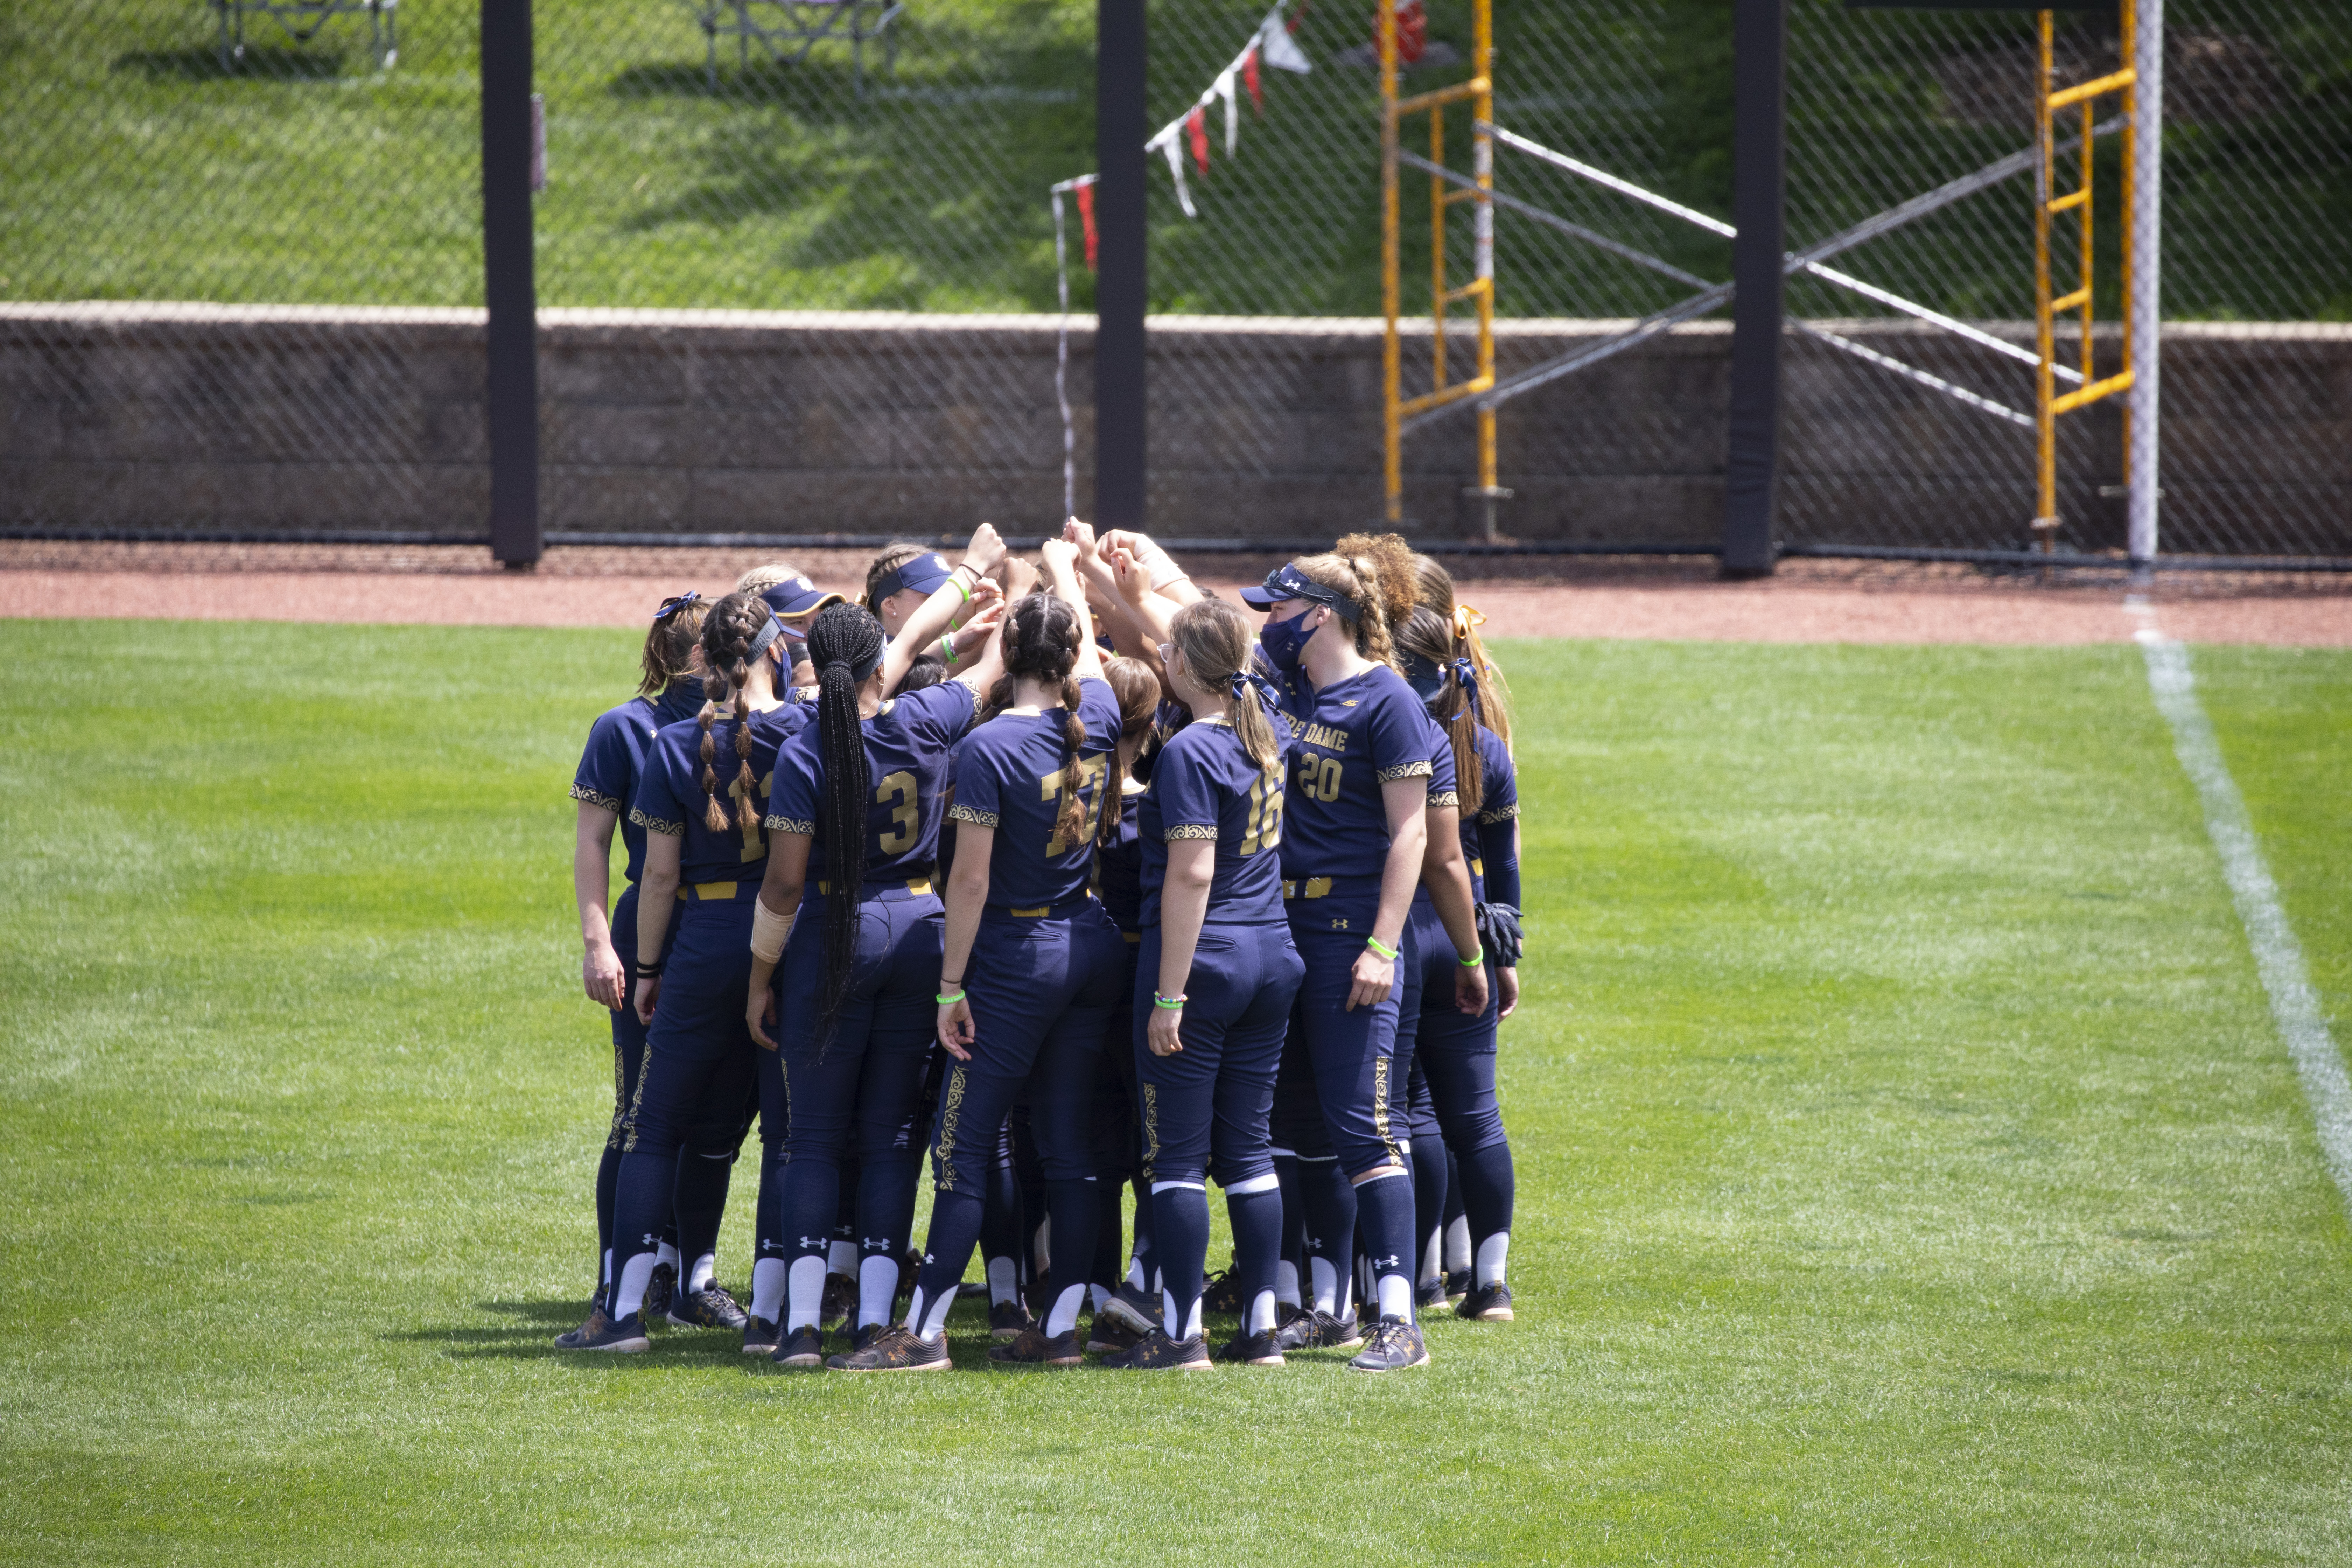 ND Softball: Early Surge By VT Takes Down The Fightin' Irish